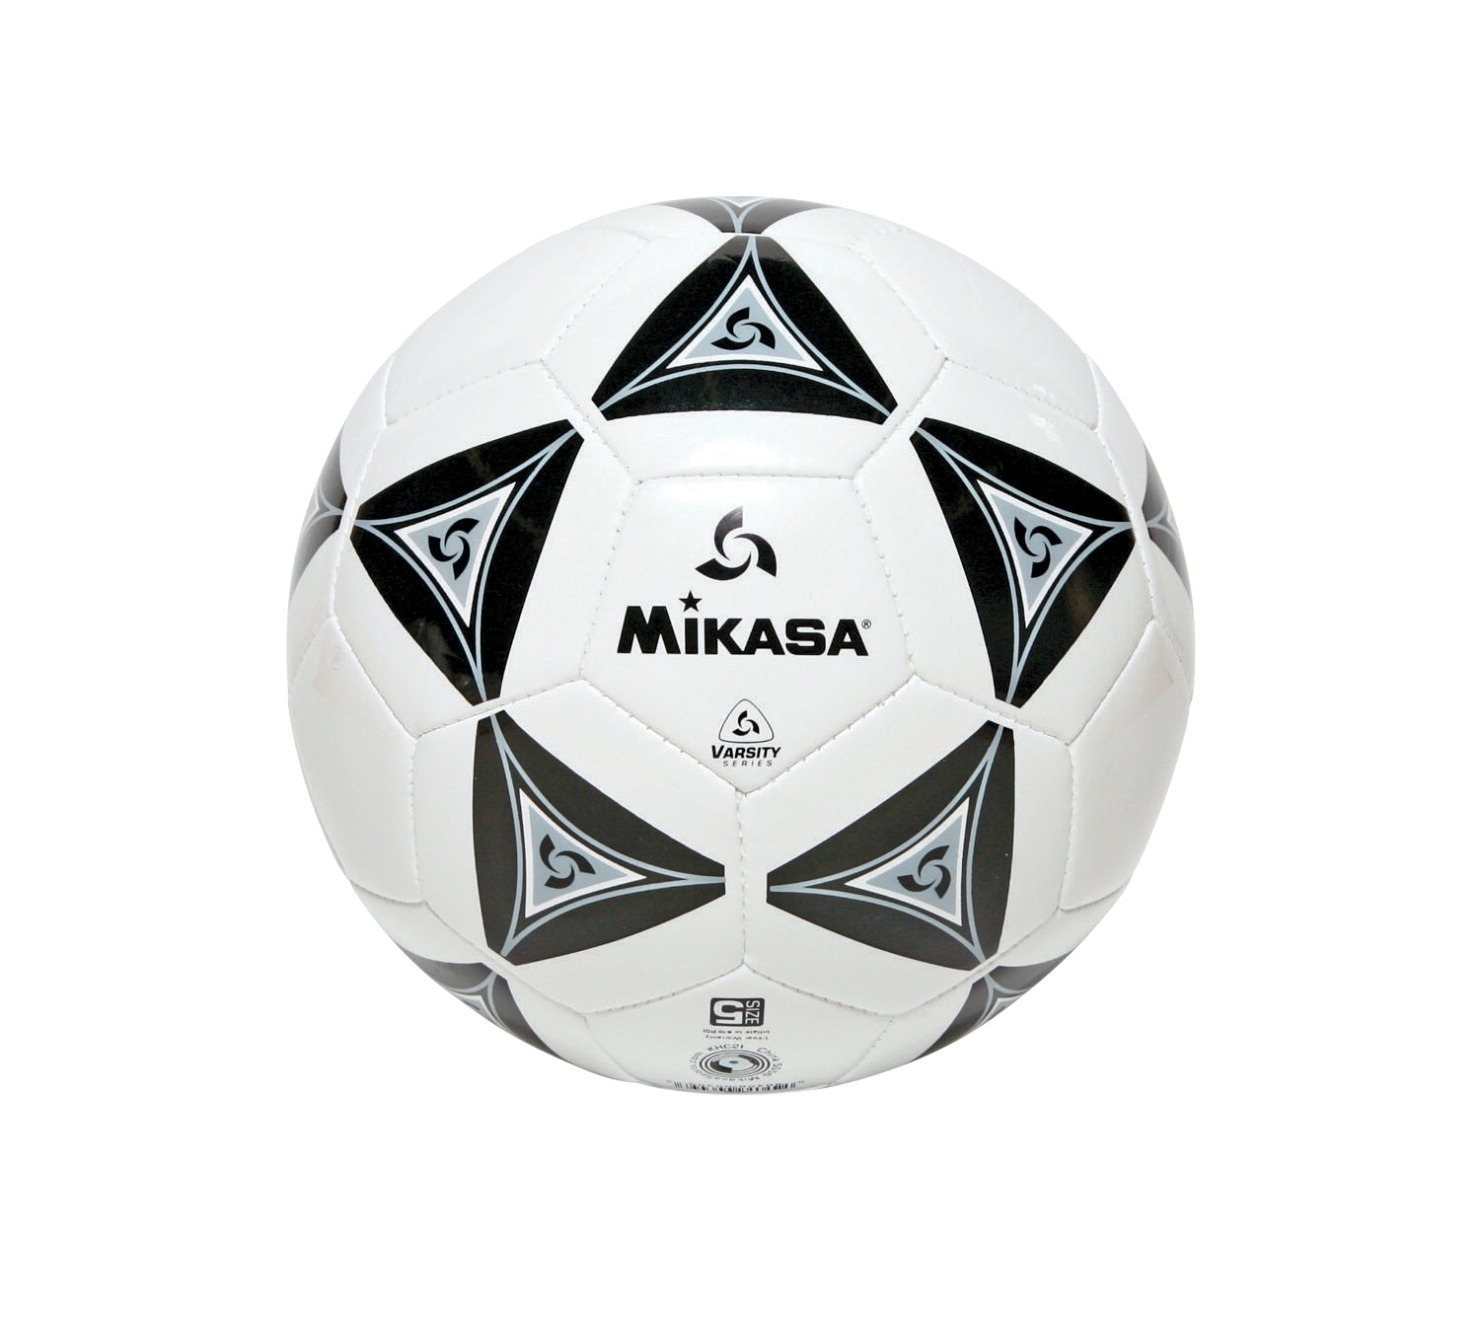 Learning: Science General Science Overhead Transparencies Deluxe Transparencies - 1282627 - Mikasa No 3 Deluxe Cushioned Soccer Ball; Black/white 1282627